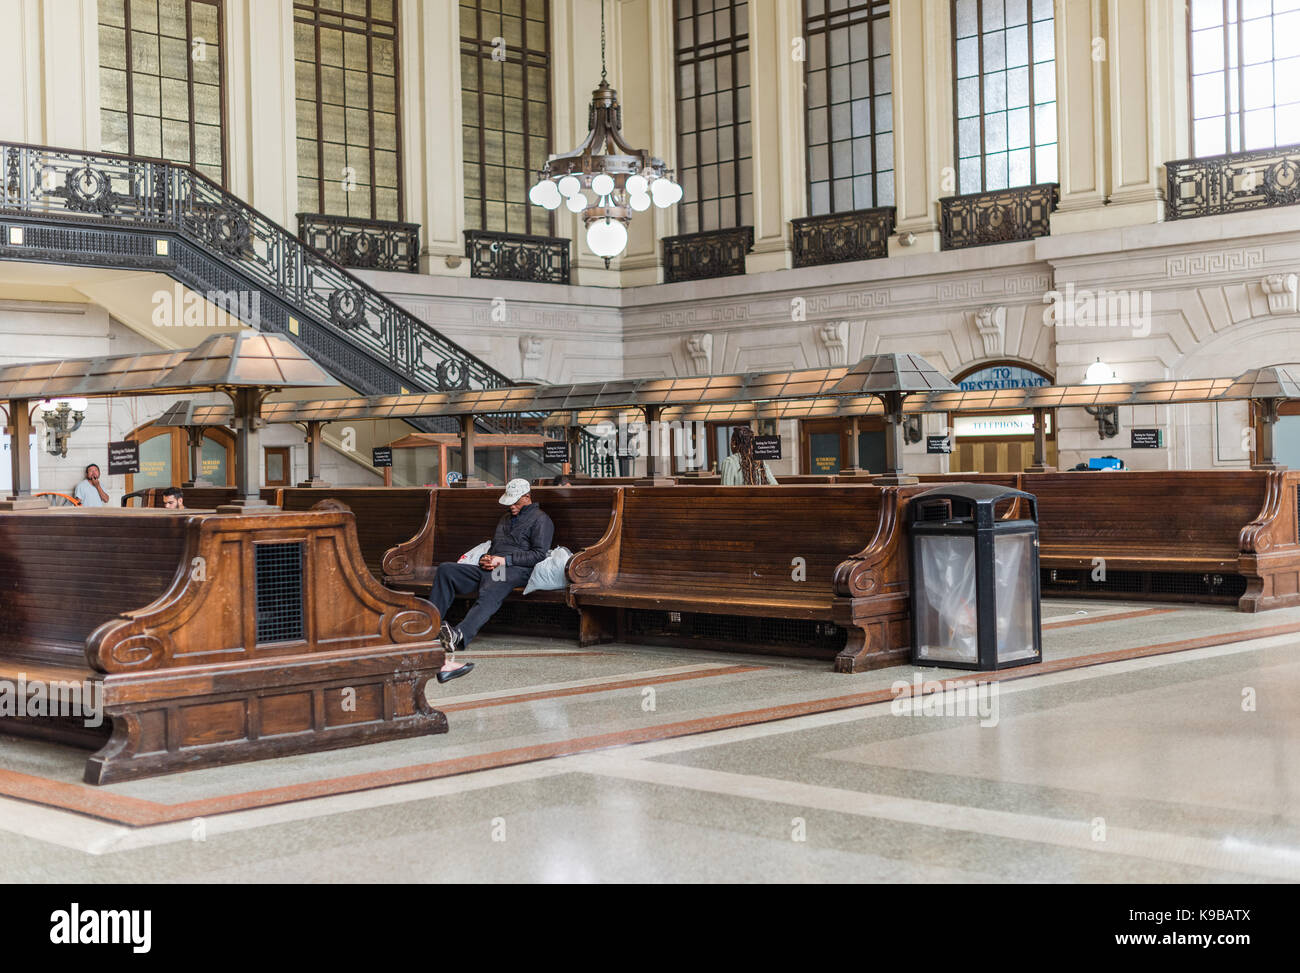 Hoboken, NJ USA -- September 19, 2017 The waiting room for the Hobaoken train station. A man is alseep on one of - Stock Image